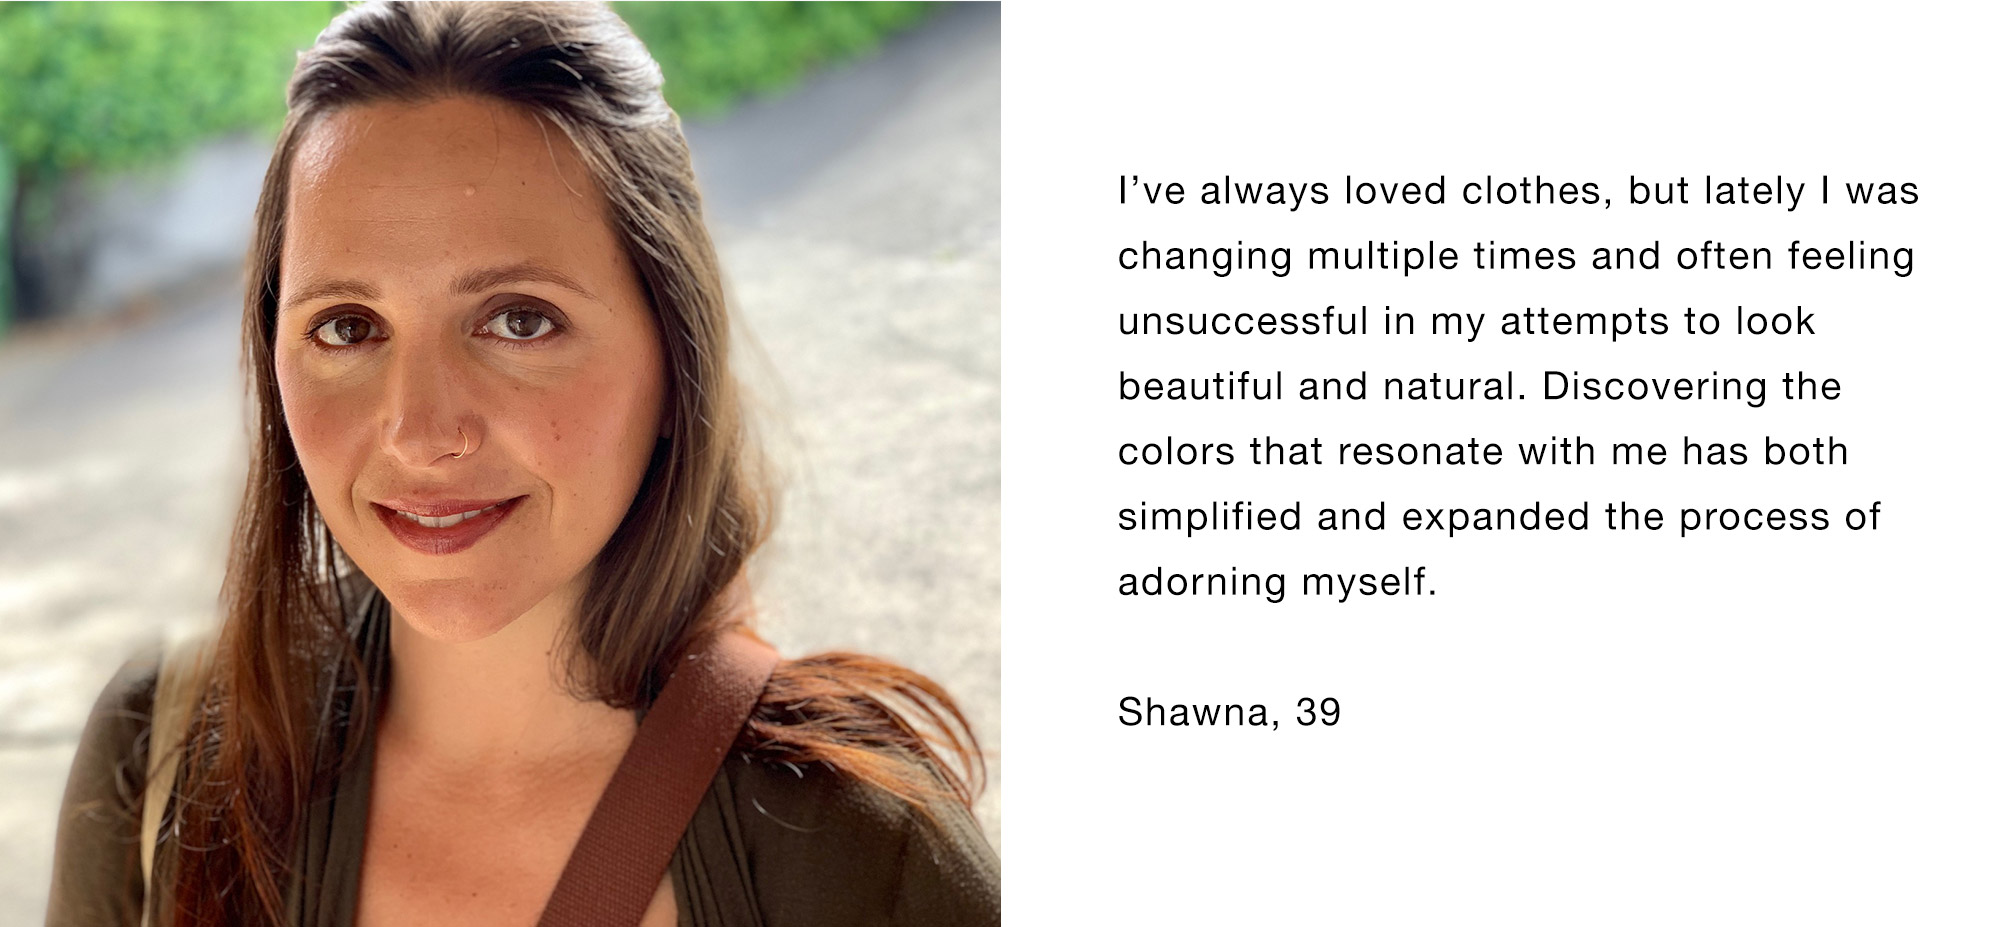 I've always loved clothes, but lately I was changing multiple times and often feeling unsuccessful in my attempts to look beautiful and natural. Discovering the colors that resonate with me has both simplified and expanded the process of adorning myself. Shawna, 39